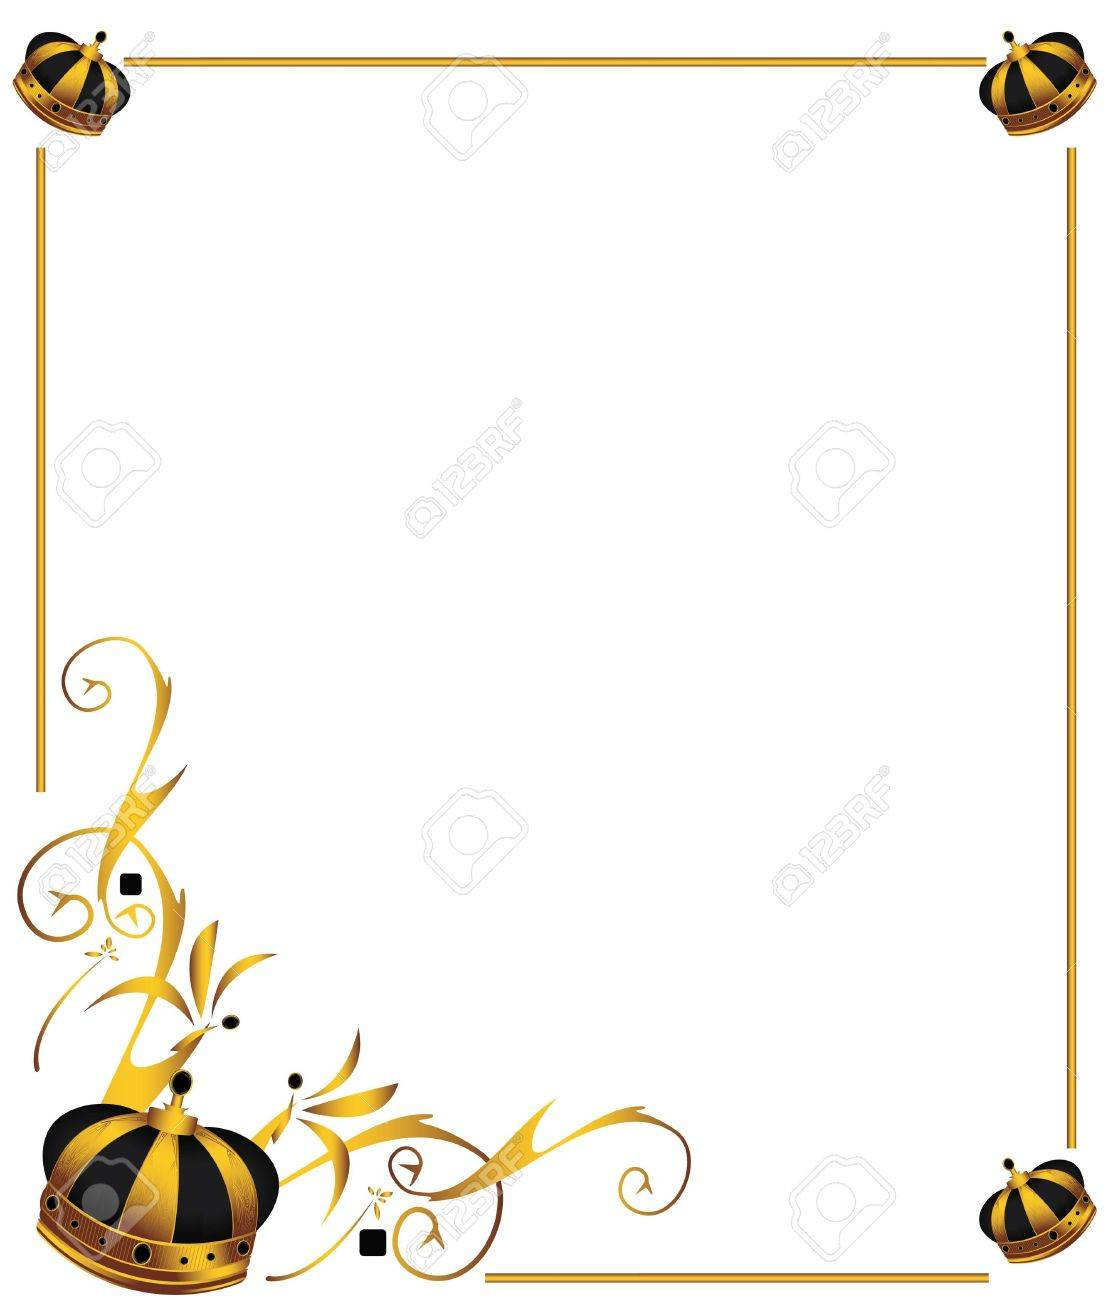 Gold crown on frame isolated on a white background - 4829727